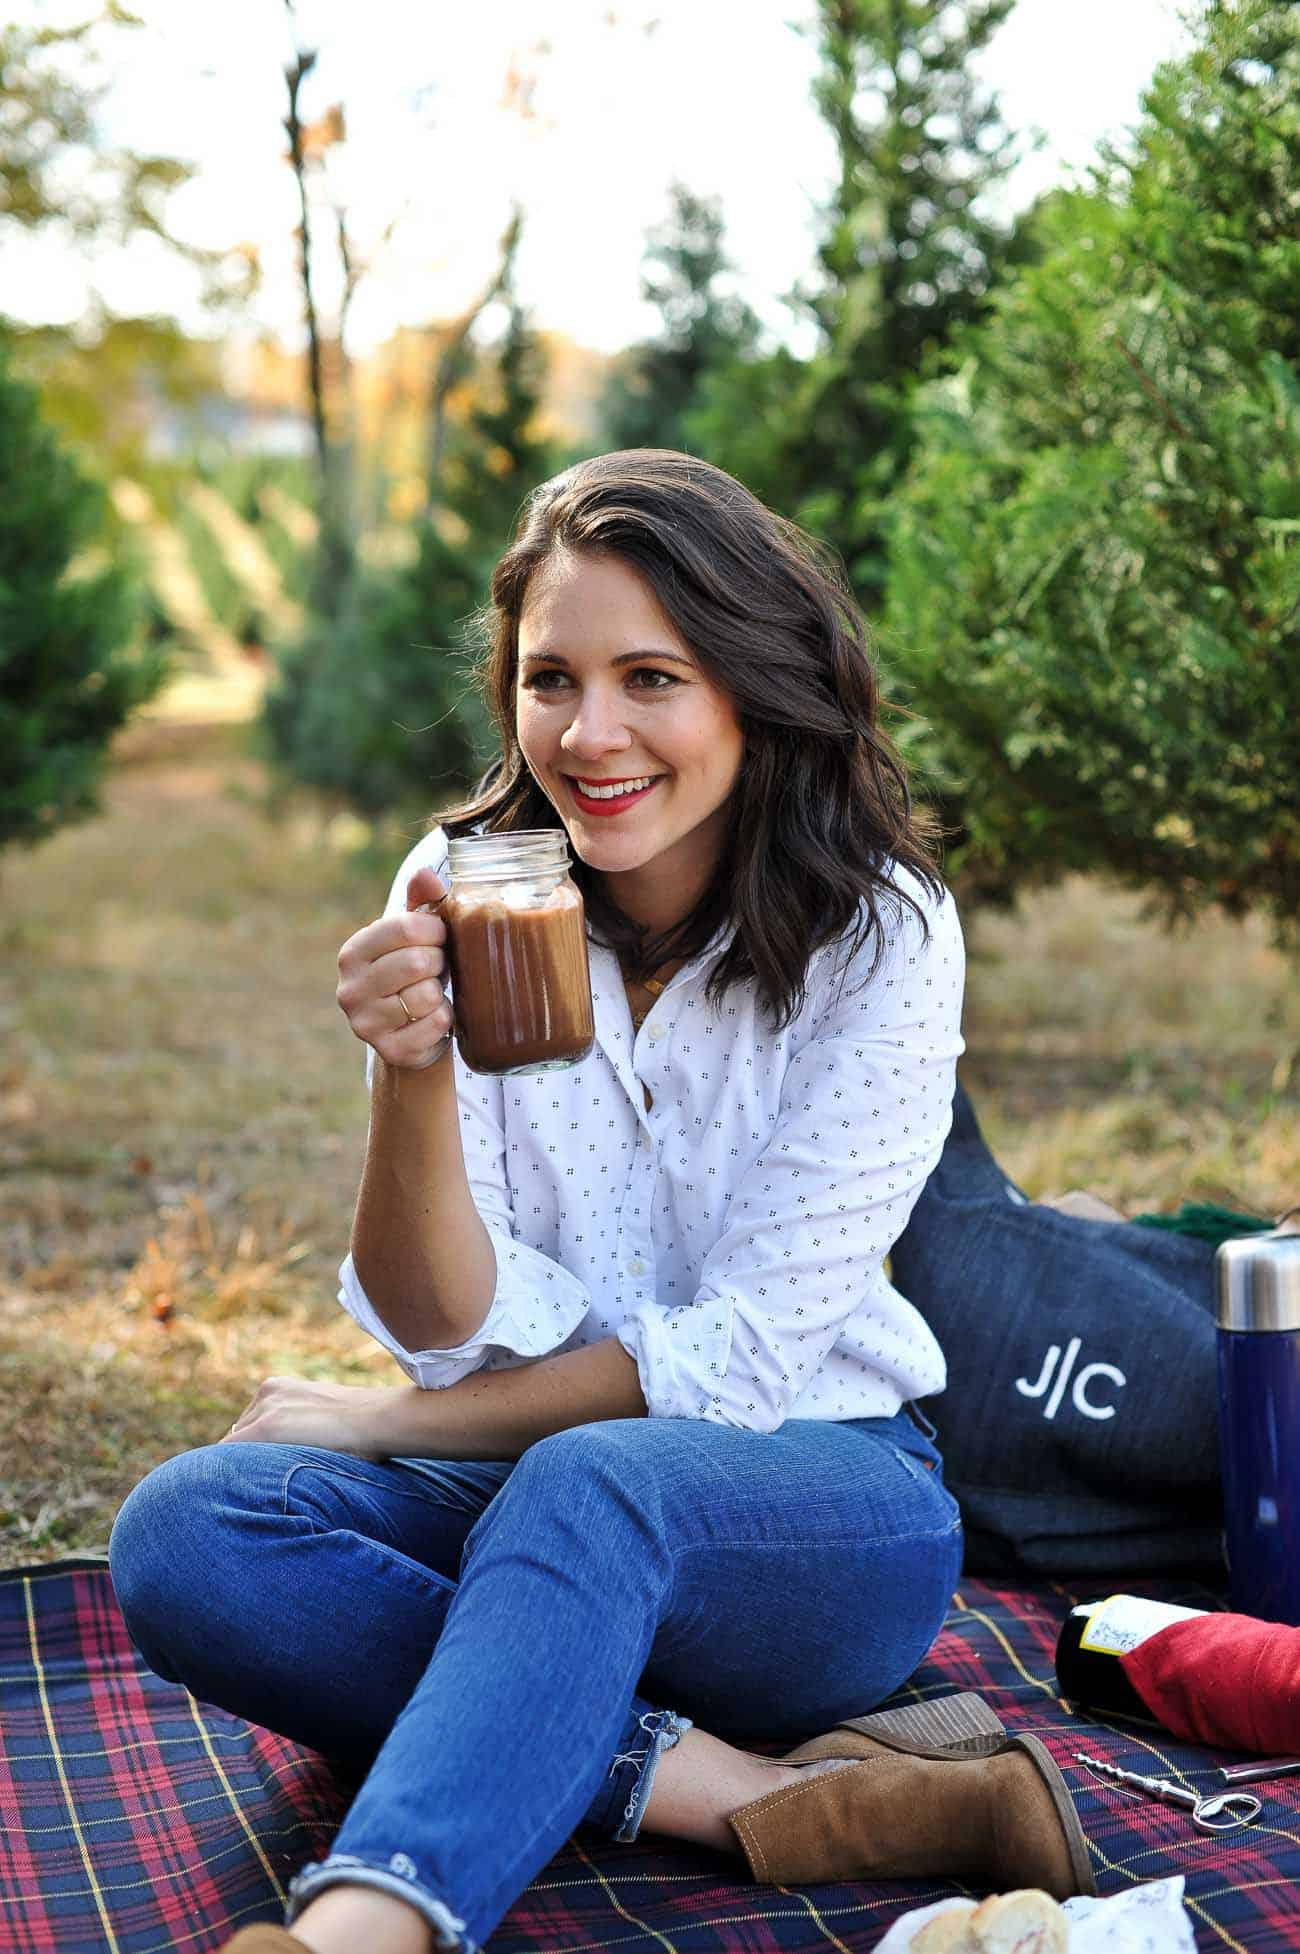 Christmas tree farm, winter picnic, fall photo ideas, hot chocolate, picnics - My Style Vita @mystylevita